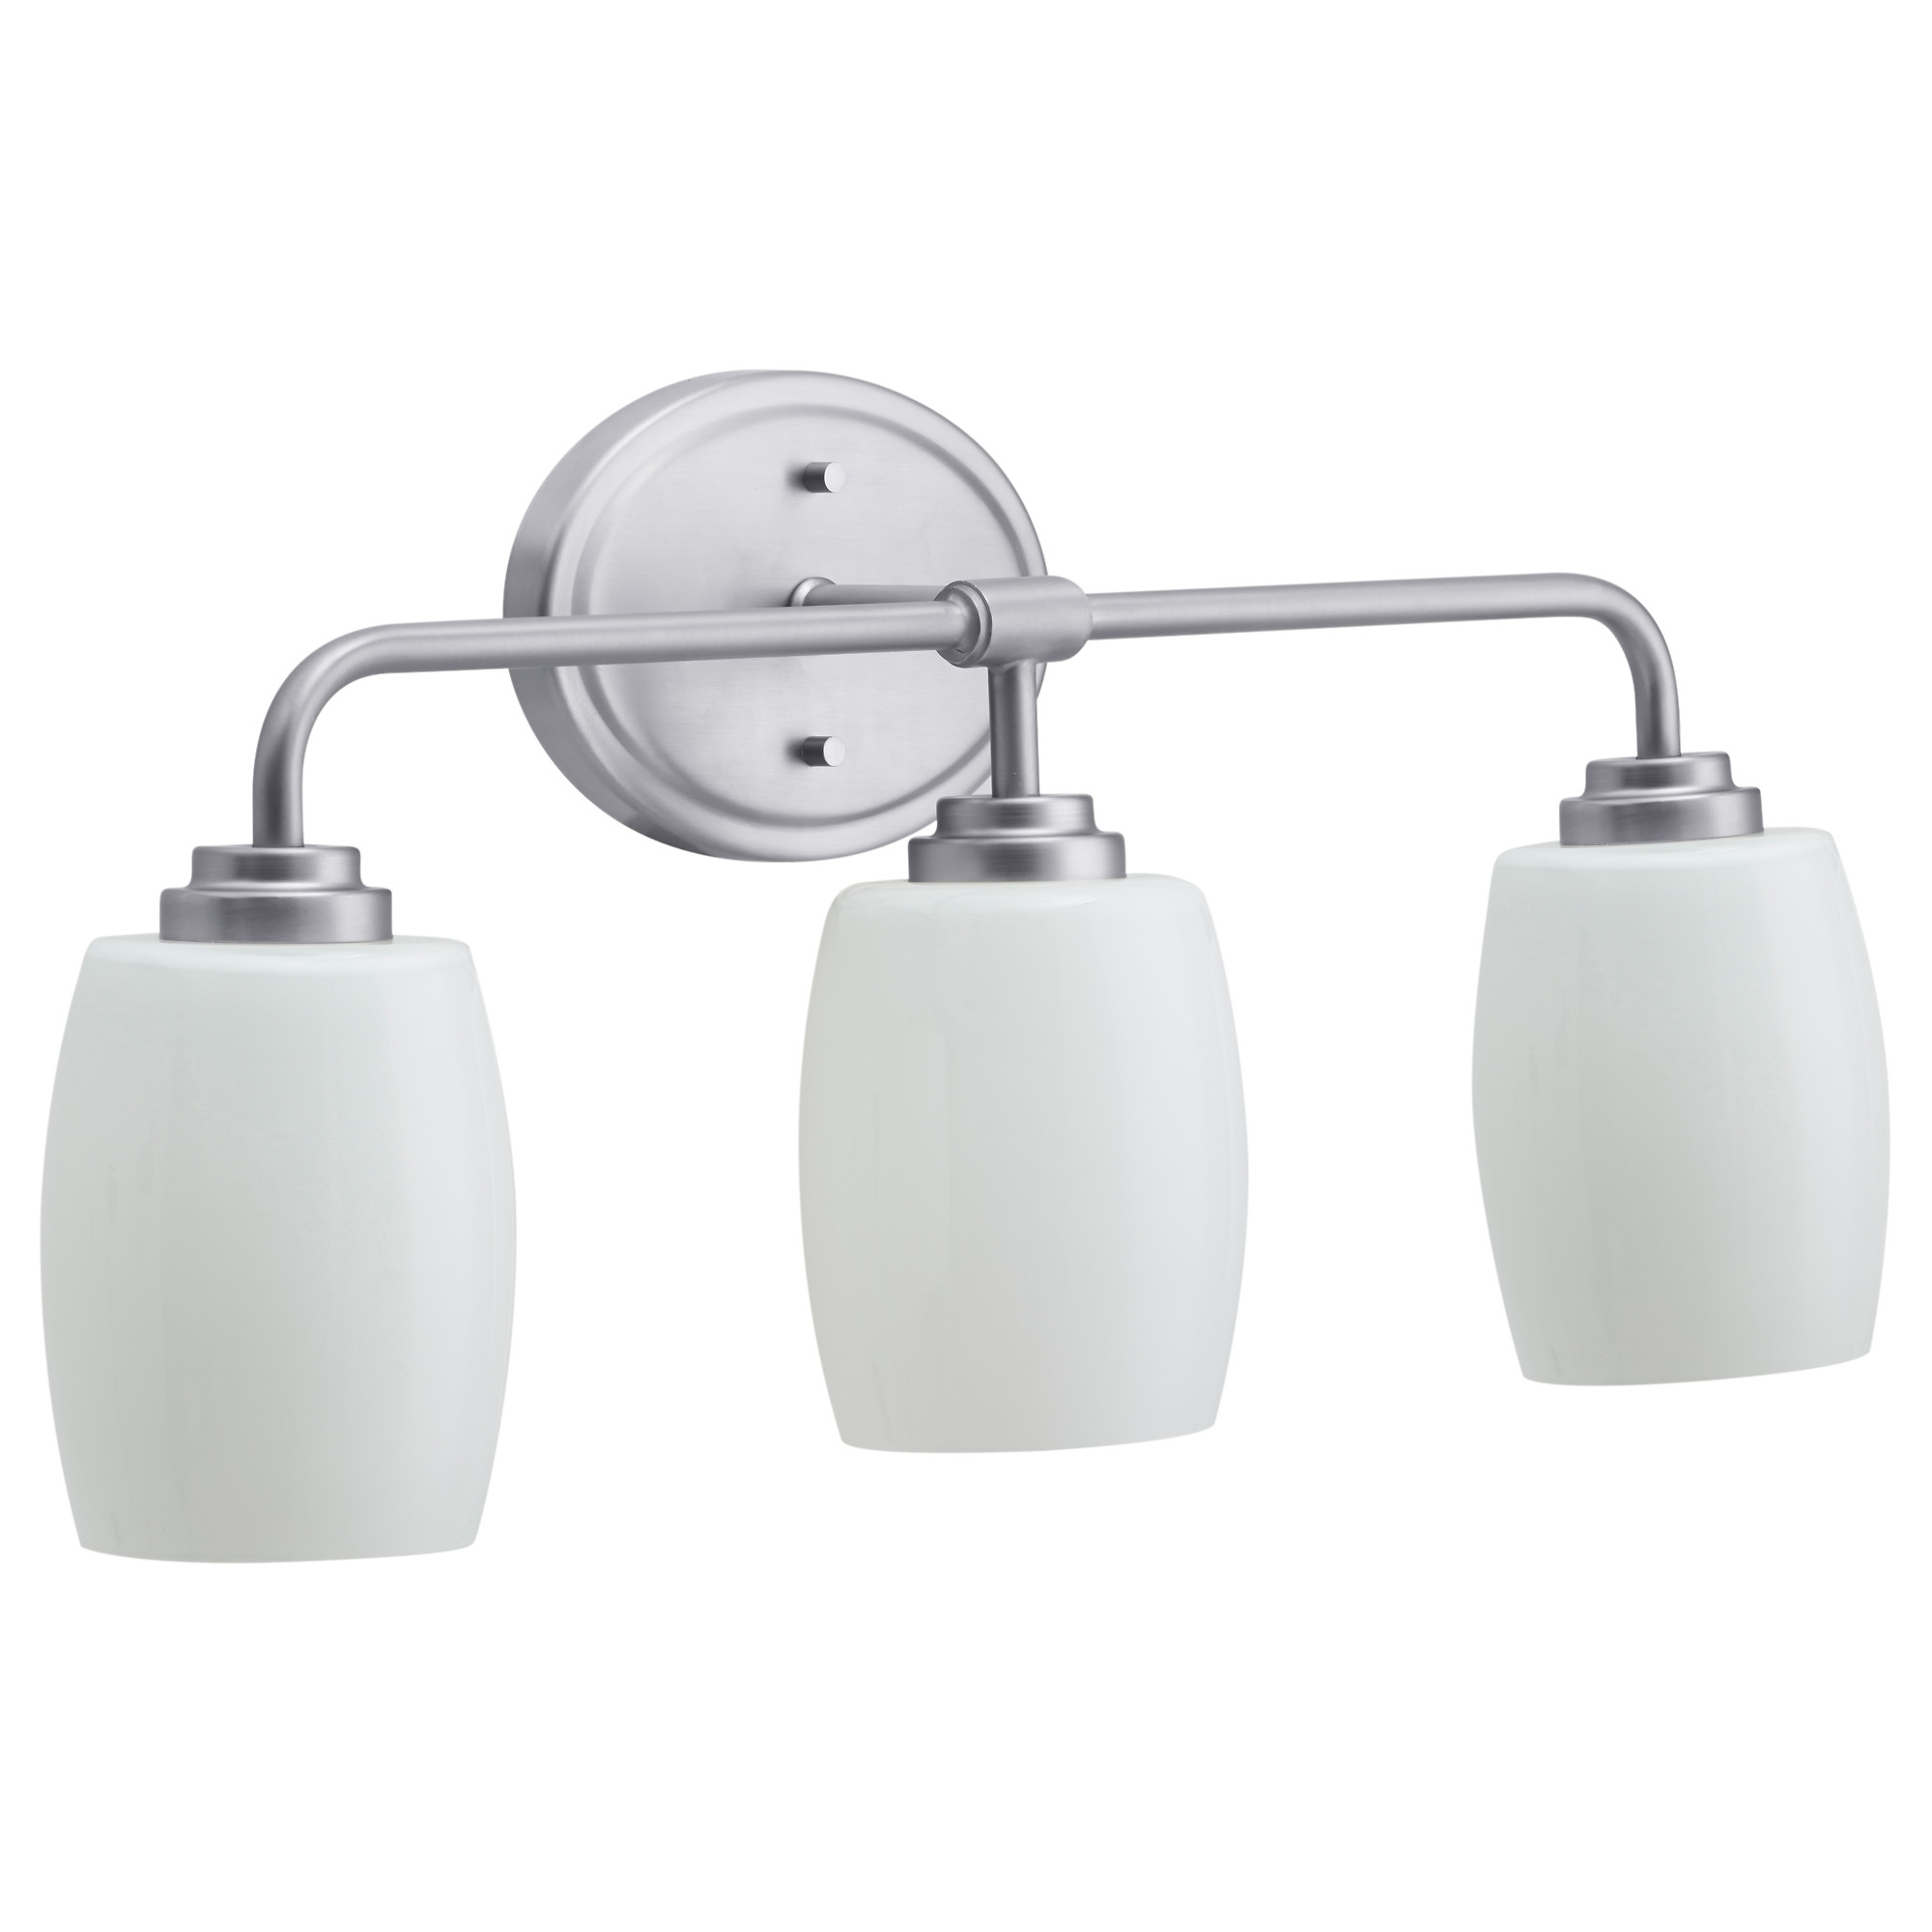 Widely Used Outdoor Wall Lights At Ikea Throughout Vallmora Wall Lamp, 3 Spots – Ikea (View 15 of 20)